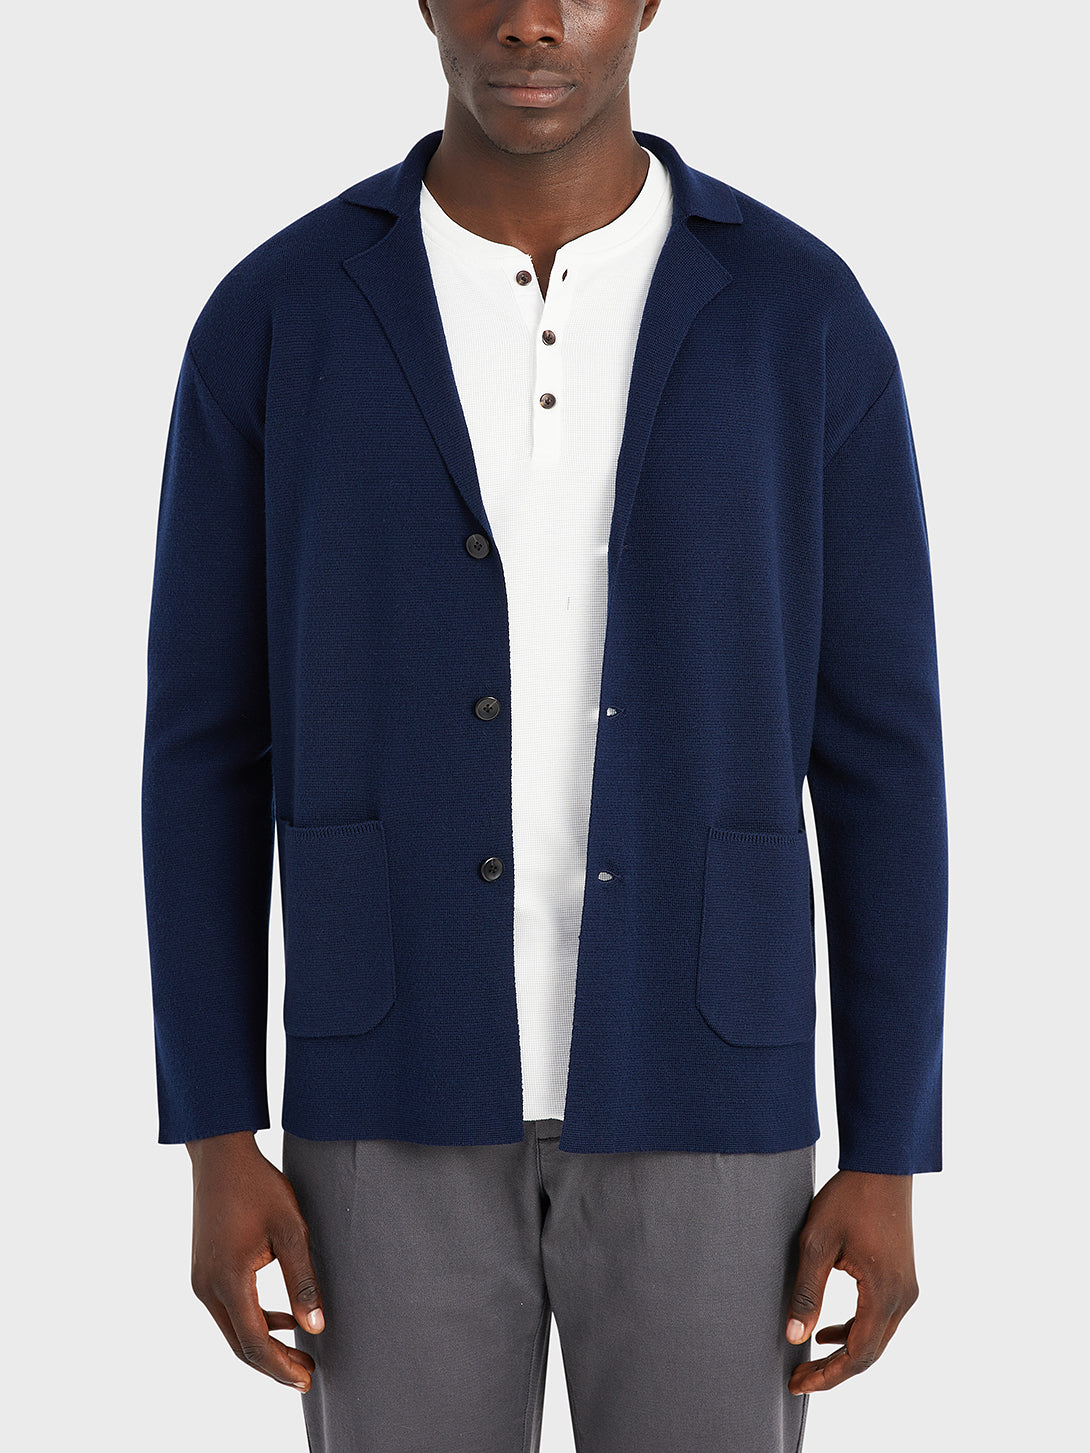 ONS Clothing Men's Cole wool cardigan in NAVY